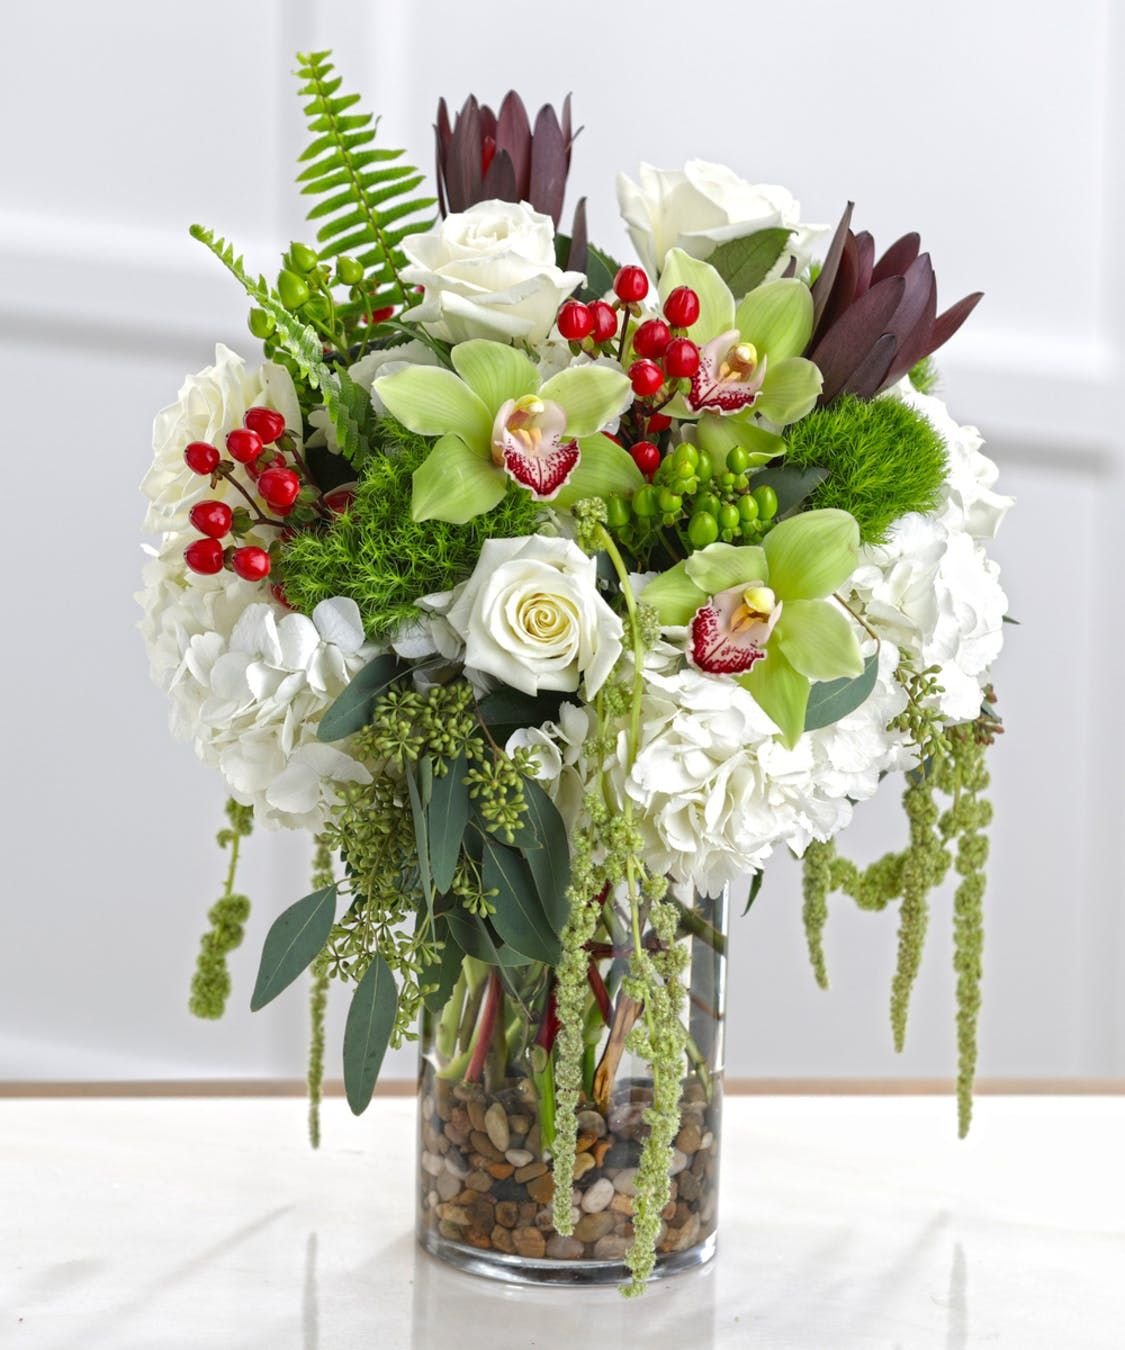 Nature's Harmony Flower delivery, Most popular flowers